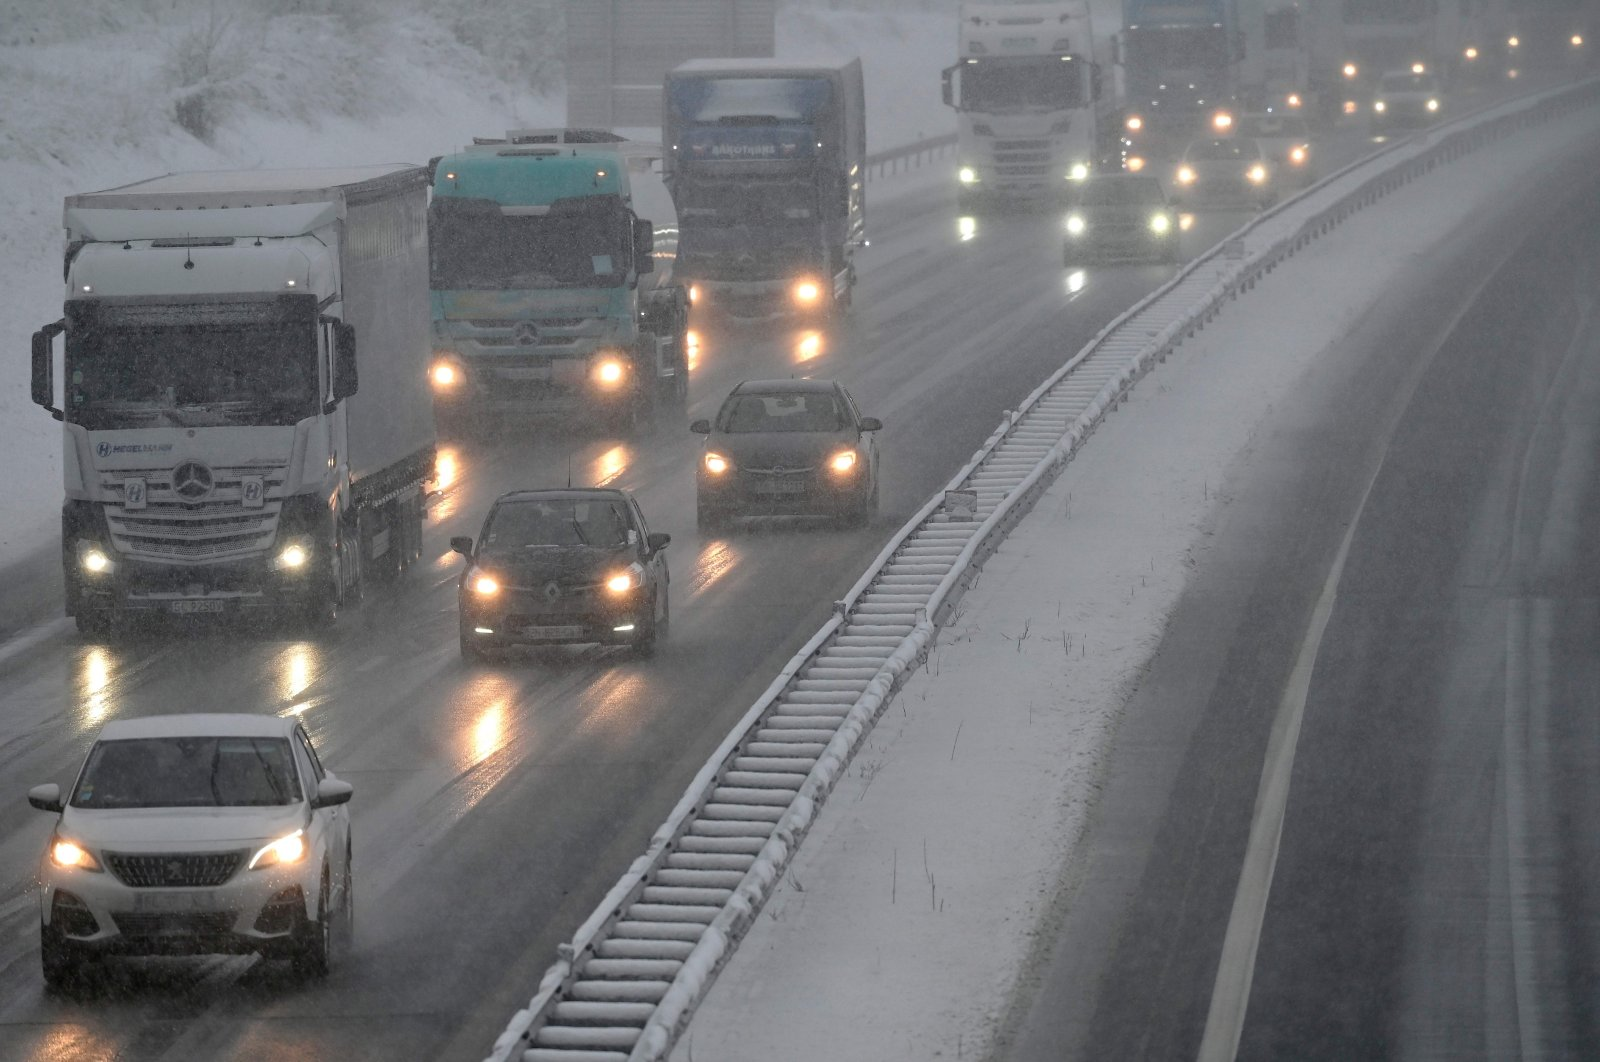 Cars and trucks on the A36 highway as the snow falls in Brunhaupt-le-Haut, France, on Jan. 14, 2021. (AFP Photo)